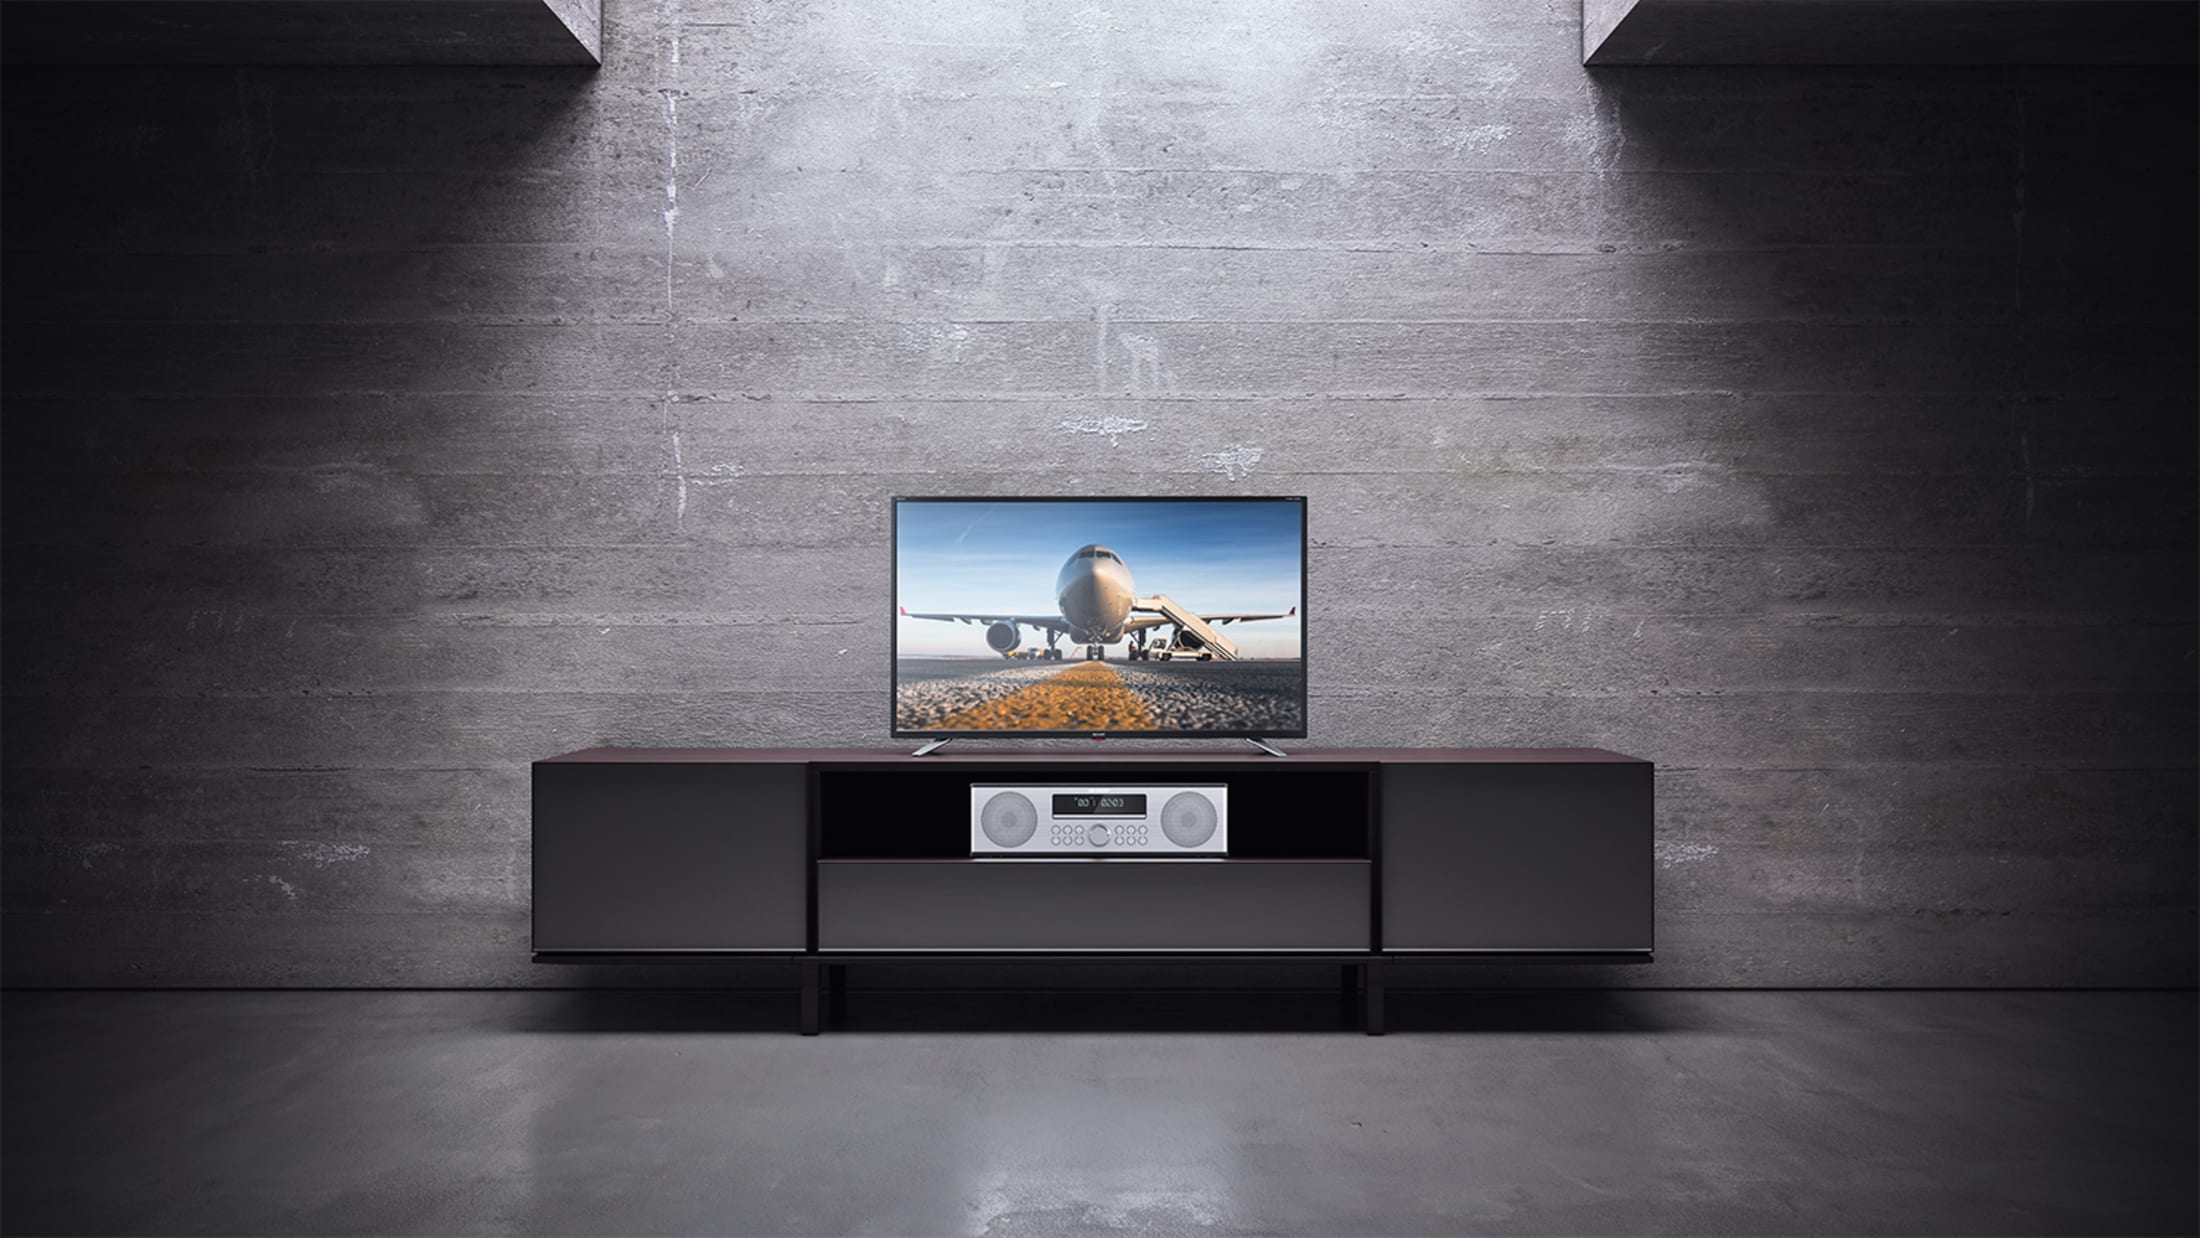 All-in-One Stereo Sound System, 90 W, reddot design award winner 2018, with Bluetooth wireless music streaming, CD player, DAB/DAB+/FM tuner and remote control.